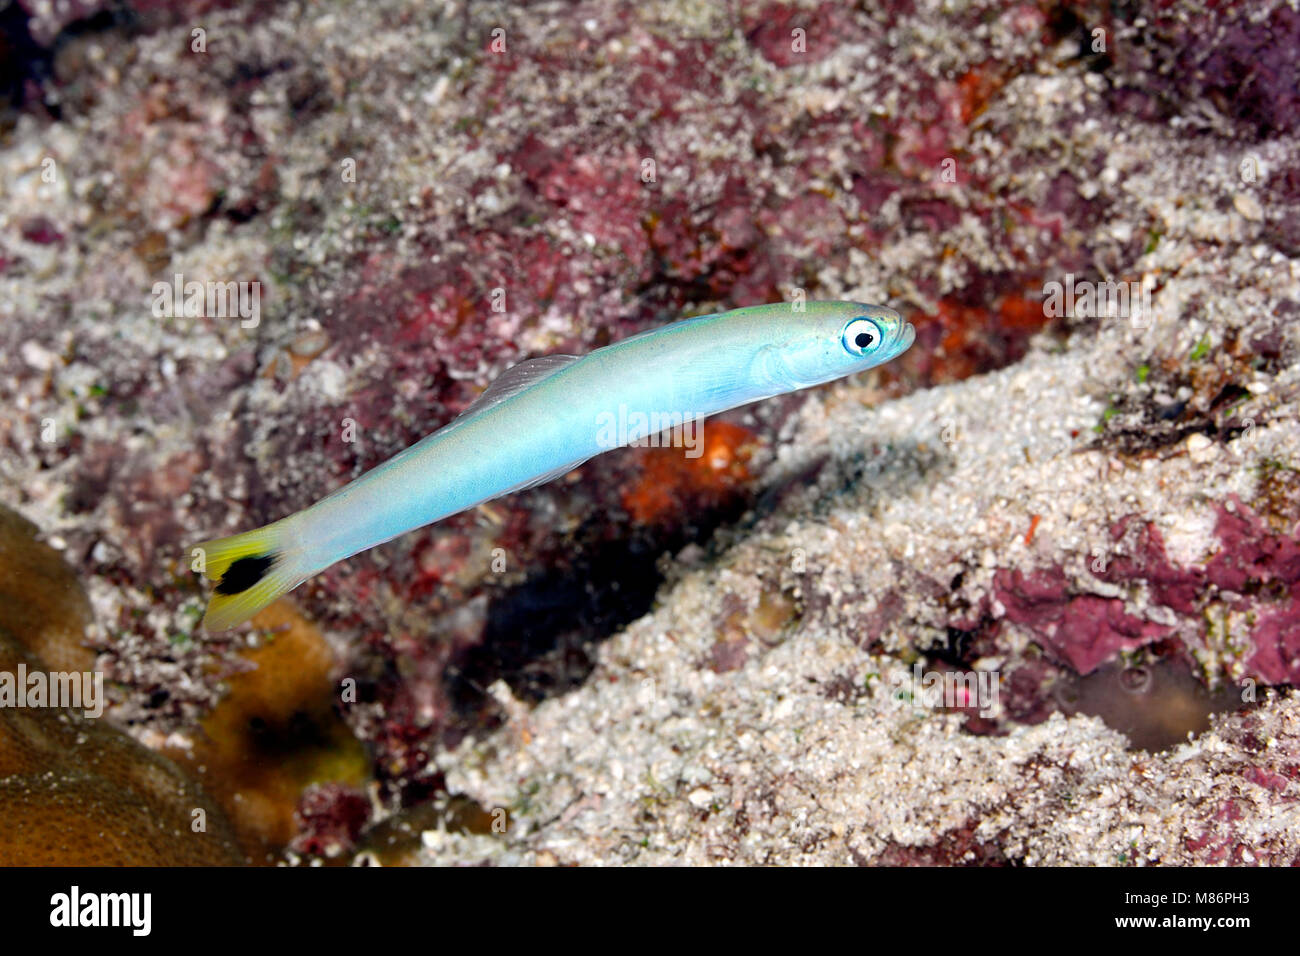 Spot-tail Dartfish, Ptereleotris heteroptera. Also known as a Tailspot Dartgoby and Blacktail Goby. - Stock Image